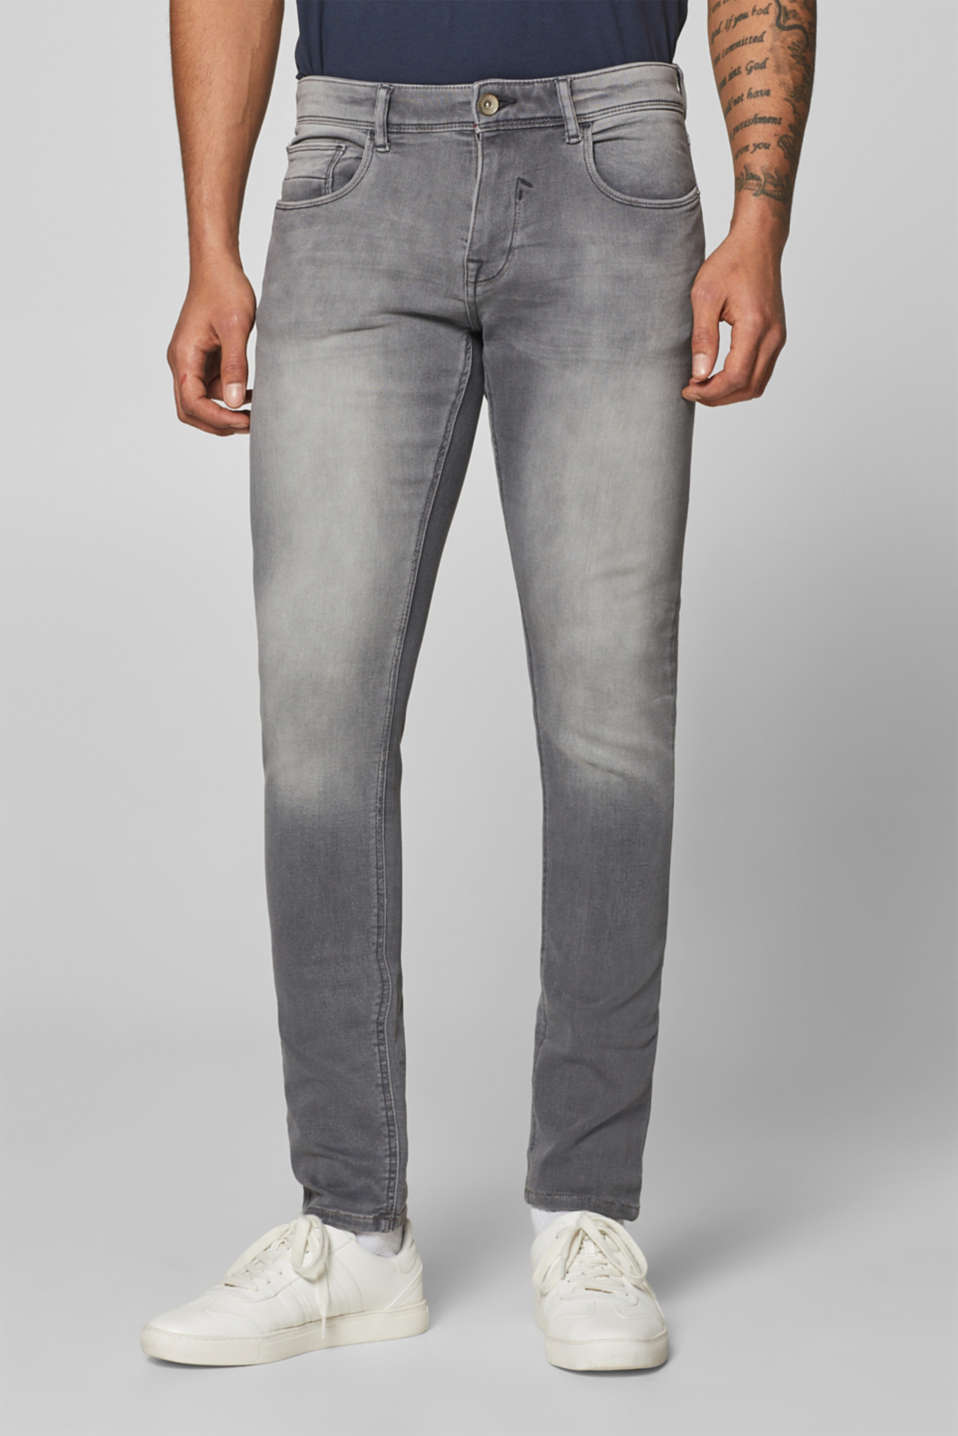 Esprit - Super stretch jeans made of tracksuit fabric